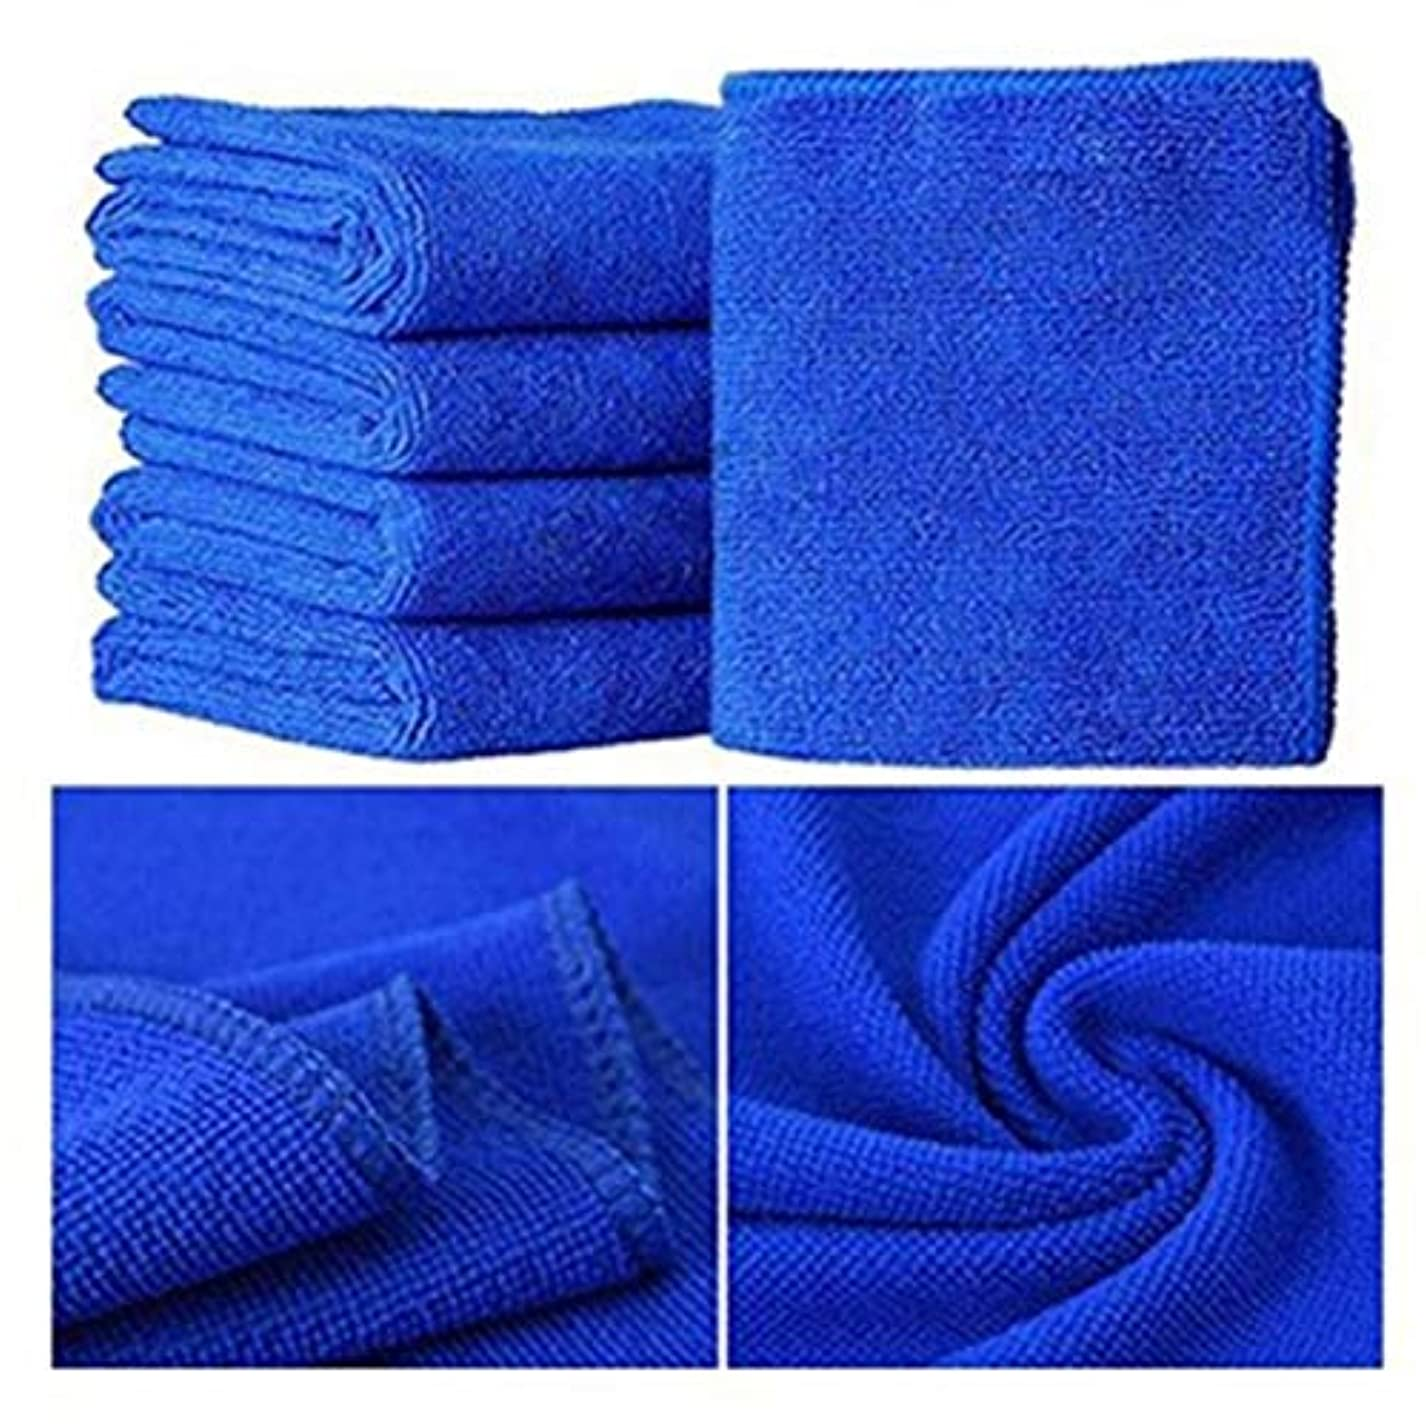 飢え緯度マネージャーMaxcrestas - 25*25cm 5 Pcs/ 10 Pcs Small Towel Soft Microfiber Towel great absorbent Towel for bathroom kitchen washing face skin body use [ Blue ]